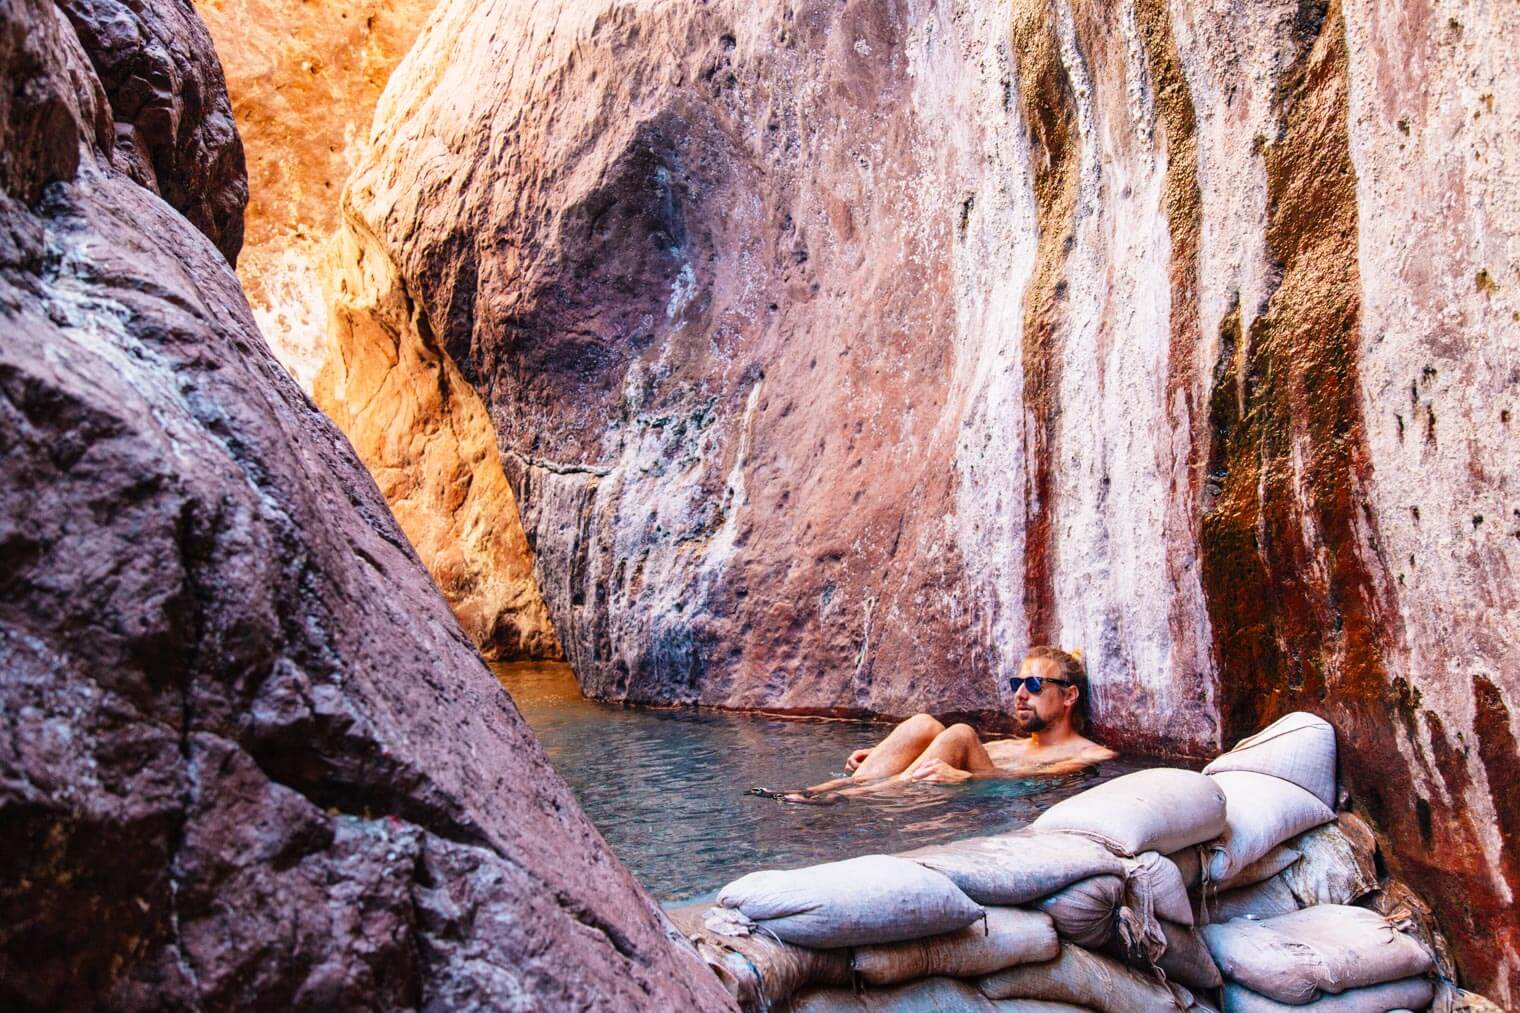 Michael relaxing in Arizona hot springs